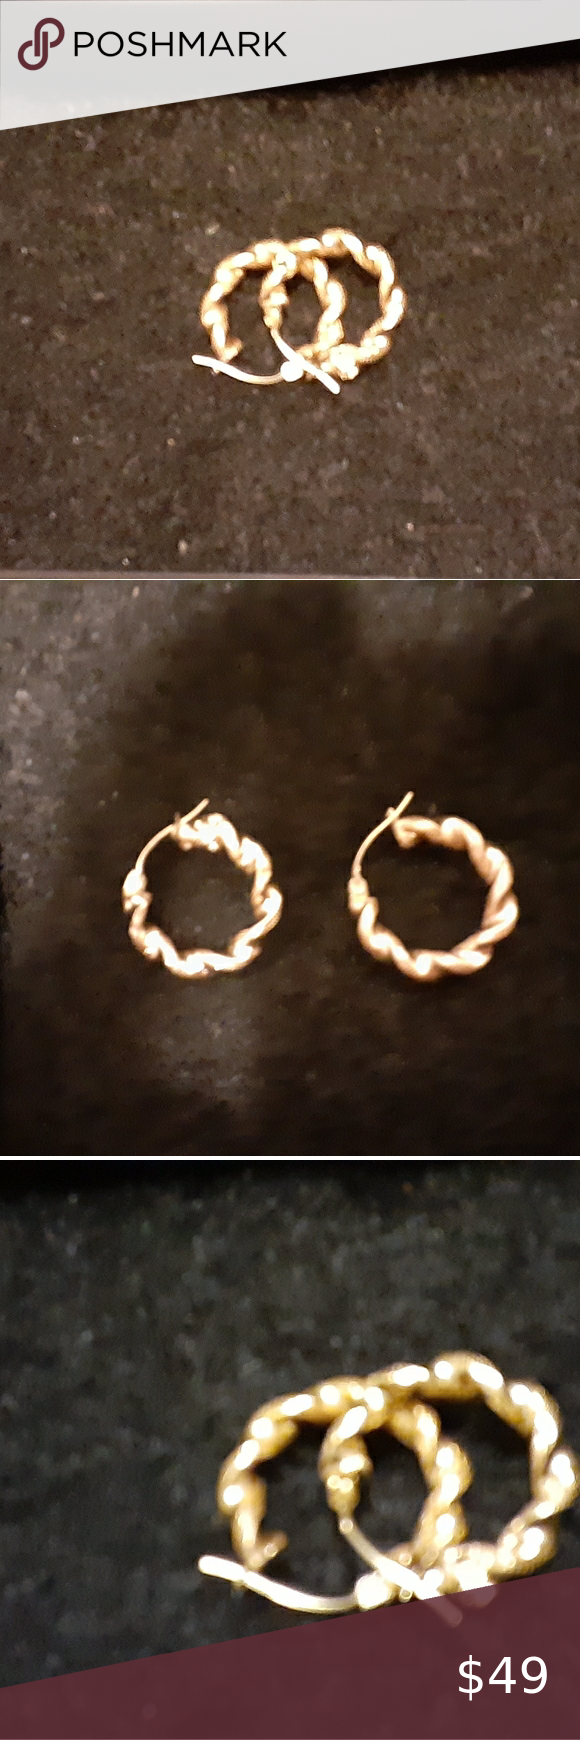 Elegant Textured 10 Karat Gold Hoop Earrings Beautiful Set Of 10 Karat Gold Jewelry Earrings In 2020 Gold Jewelry Earrings Hoop Earrings Earrings